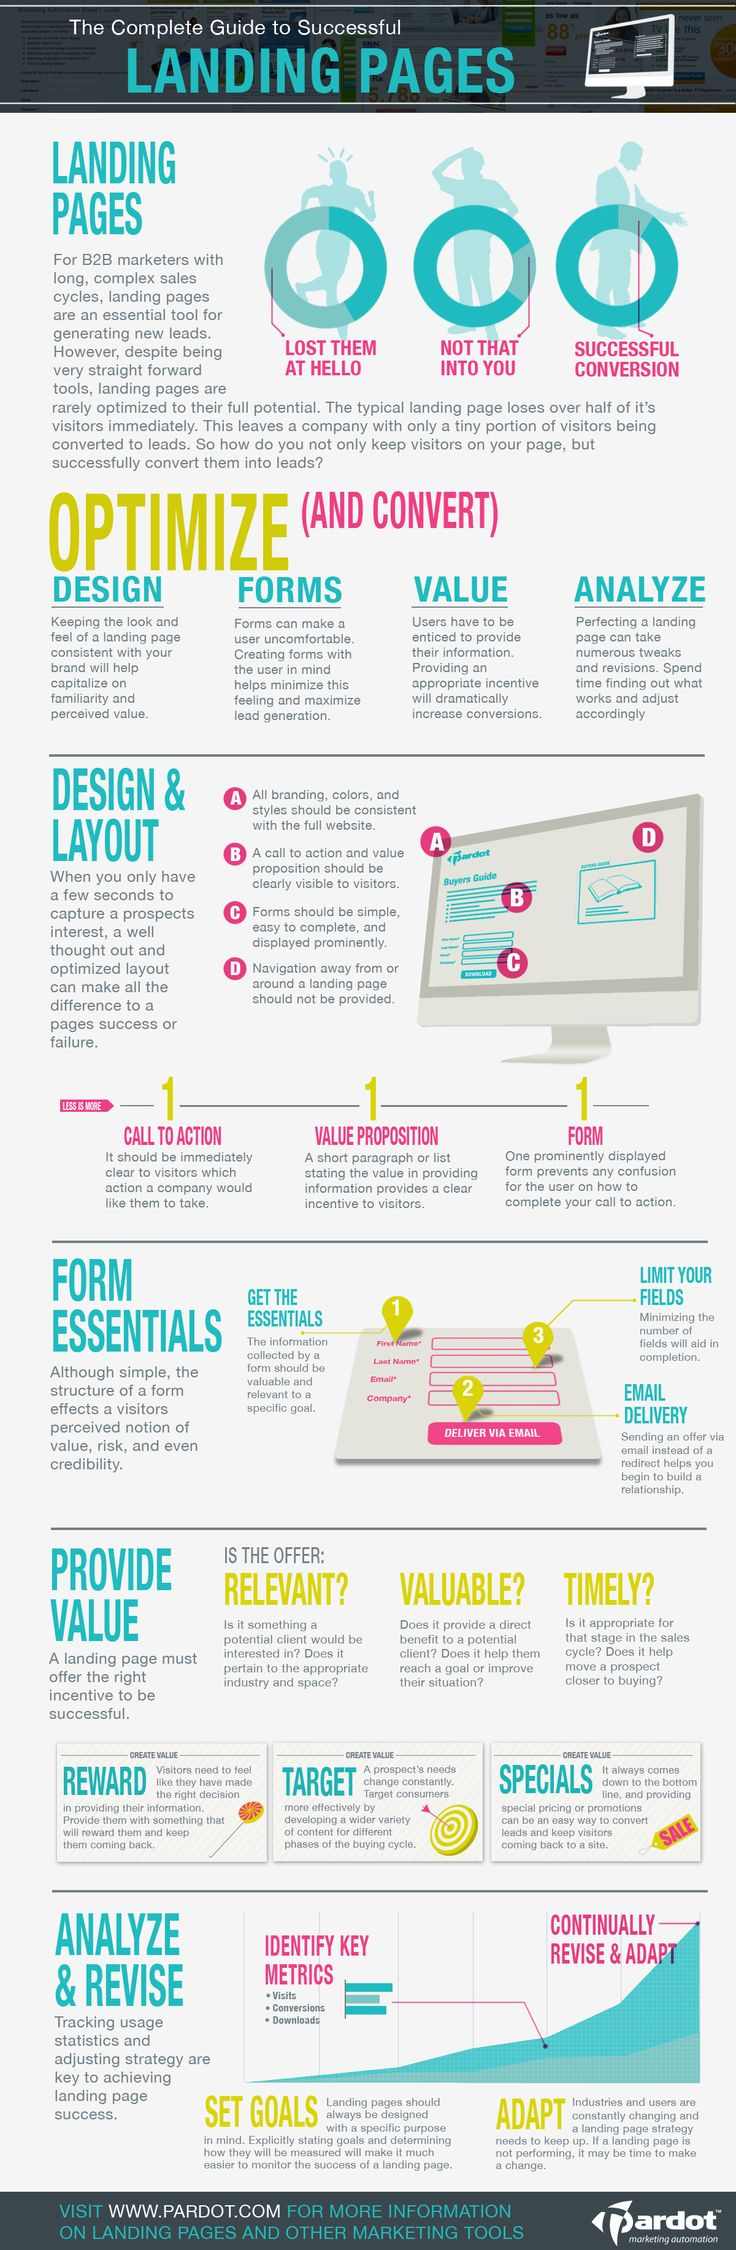 The complete guide to successful Landing Pages #infographic